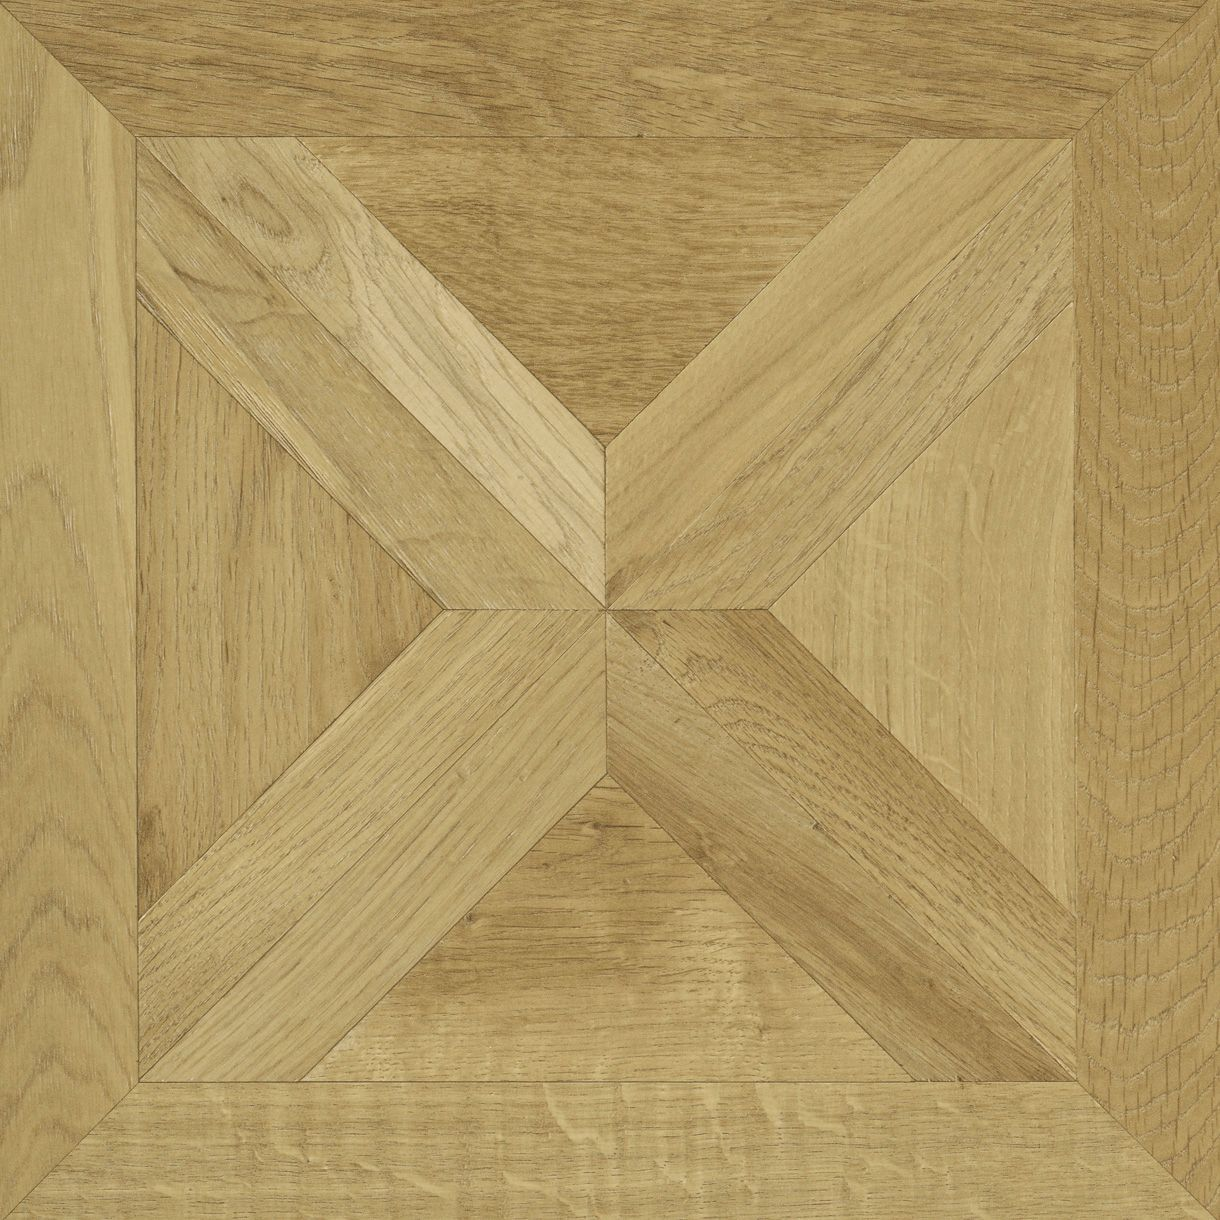 Staccato Natural Oak Parquet Effect Laminate Flooring 0 113 M² Sample Departments Diy At B Q